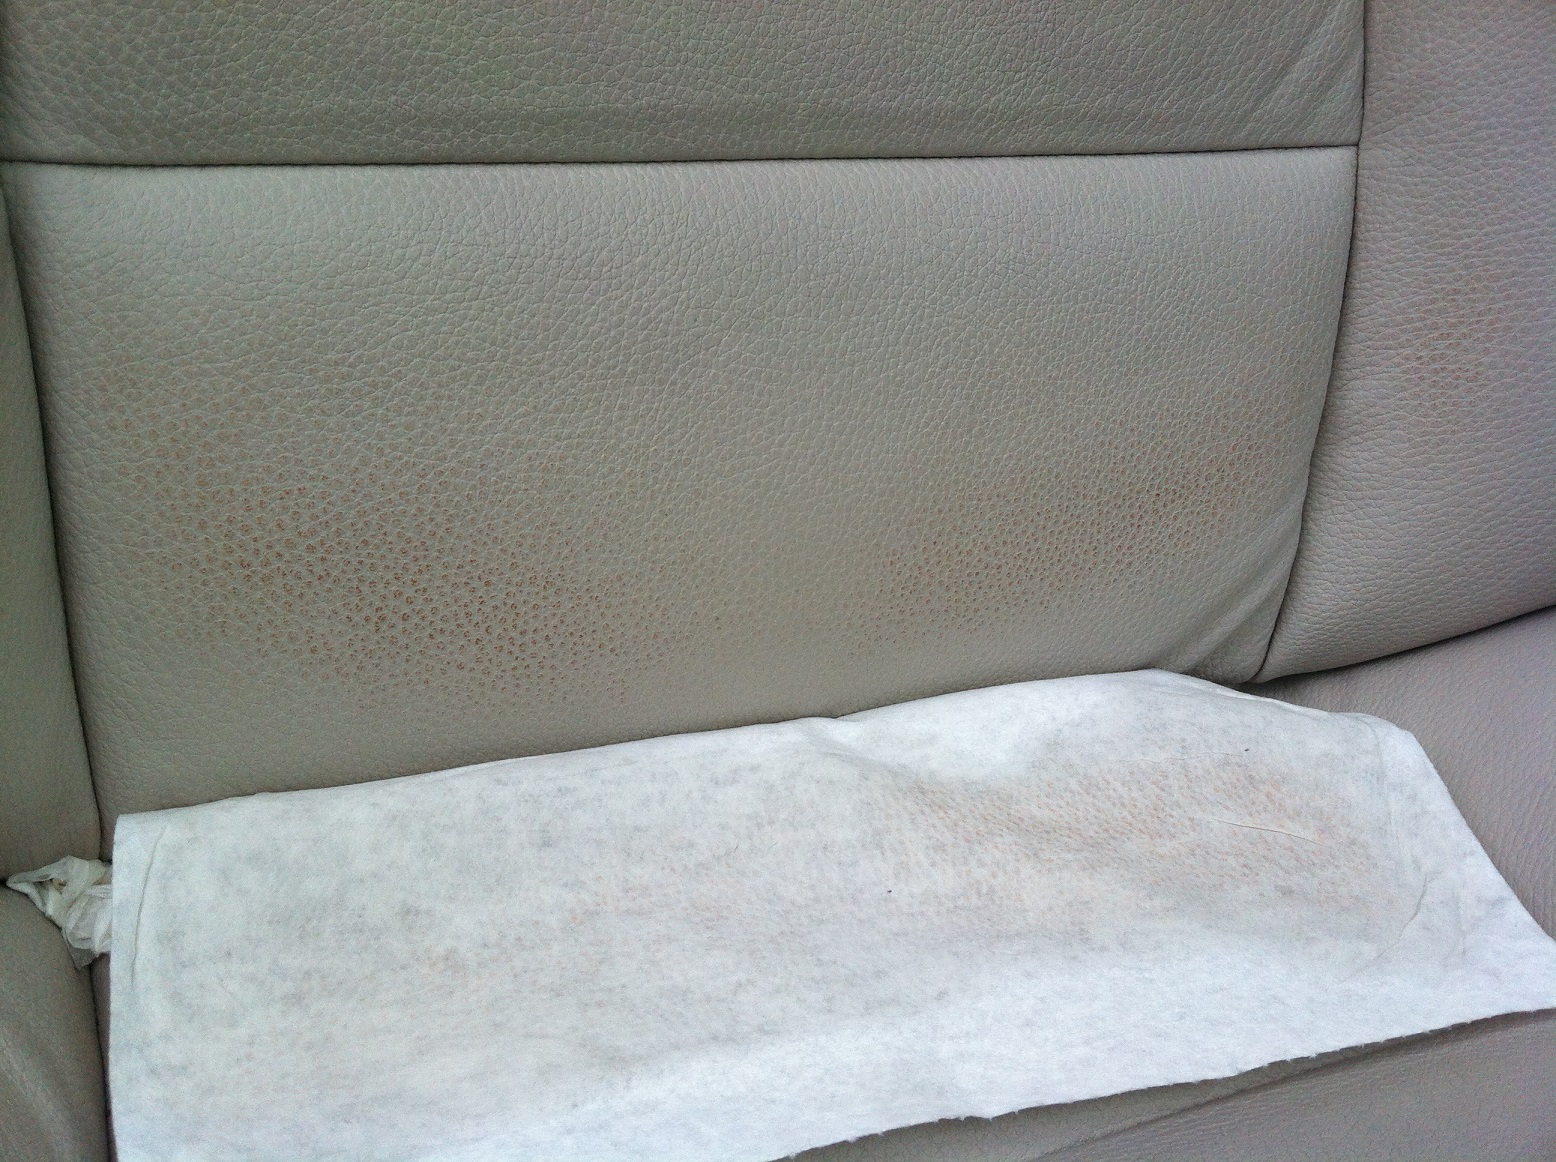 2013 bmw ivory white leather seats a 2 or 3 months